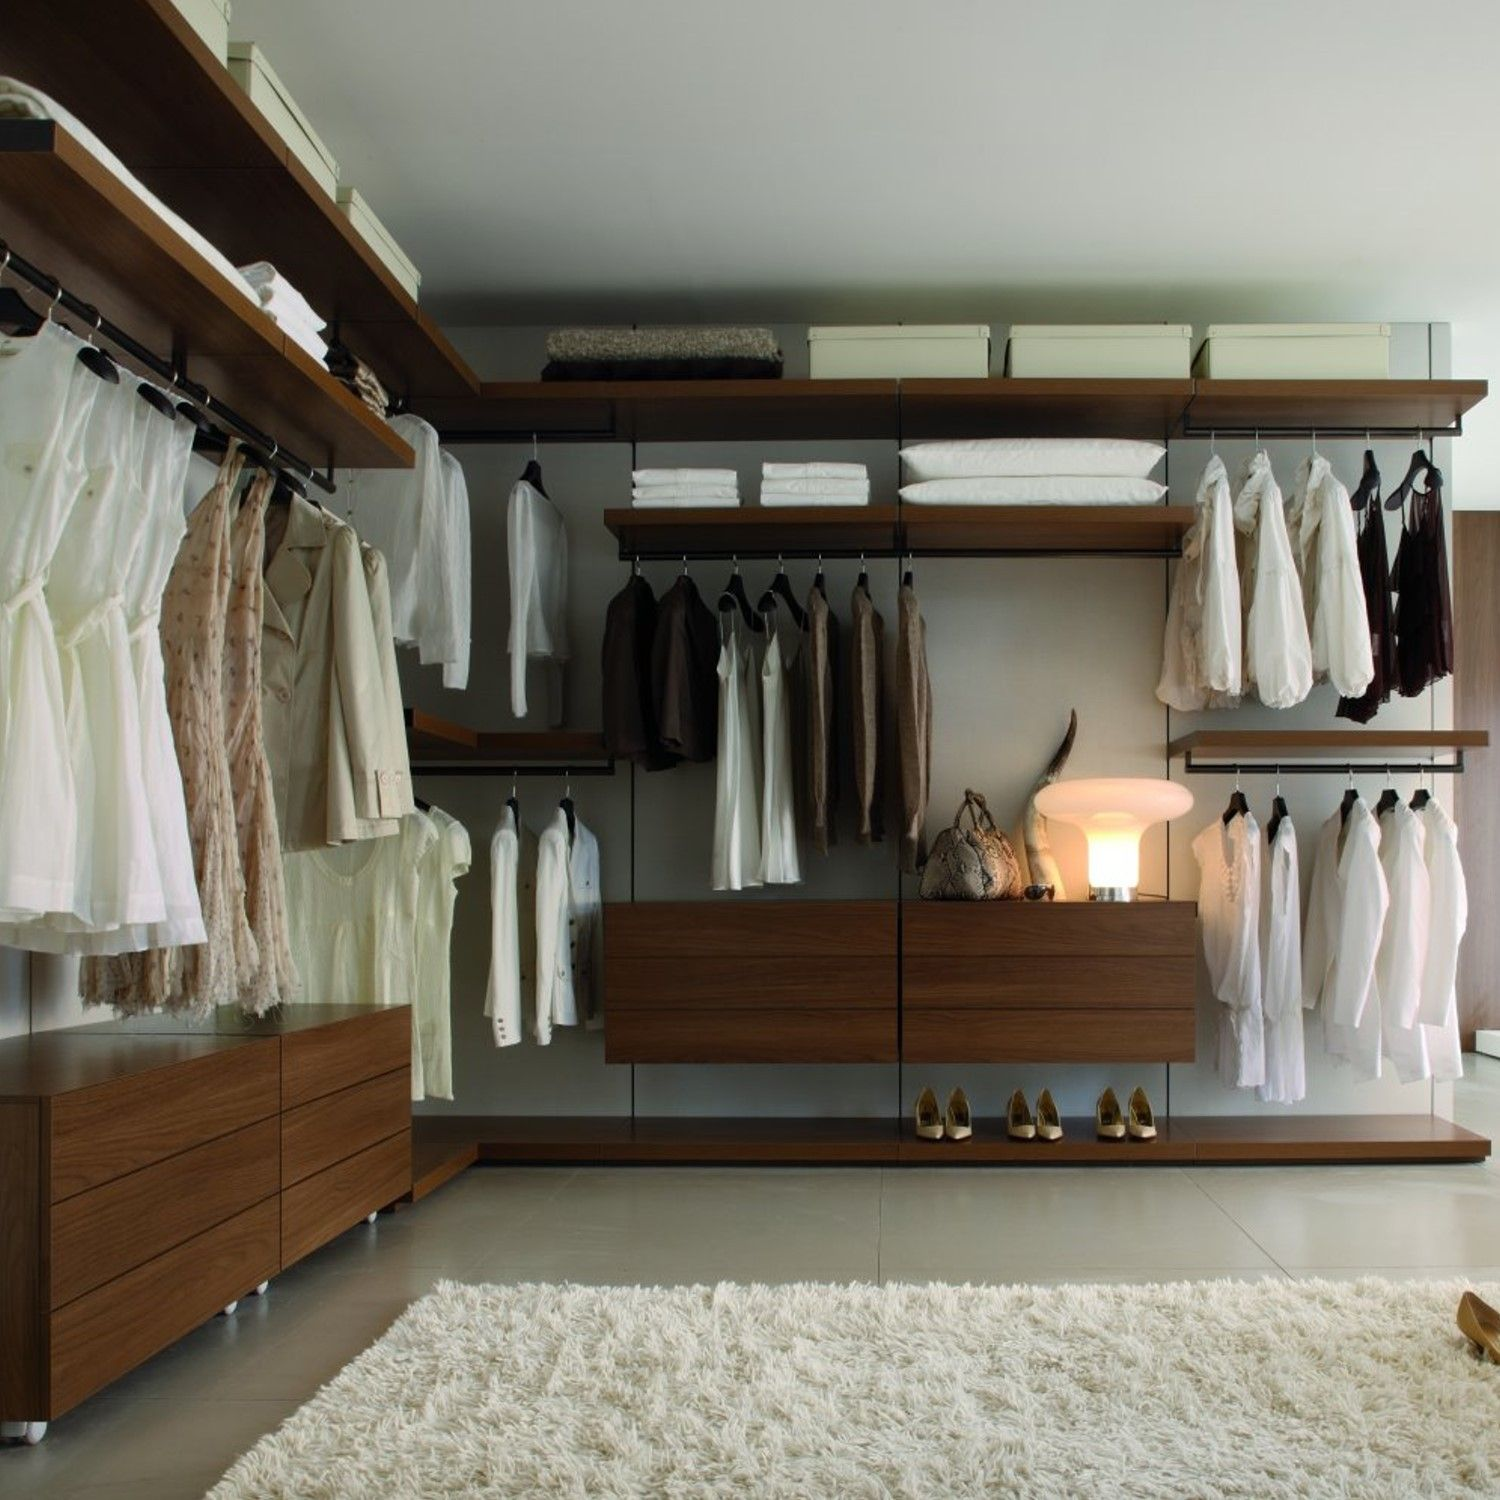 Dressing sur mesure en cr maill re bliss arredaclick chambre en 2018 pinterest dressing - Meuble cremaillere ...